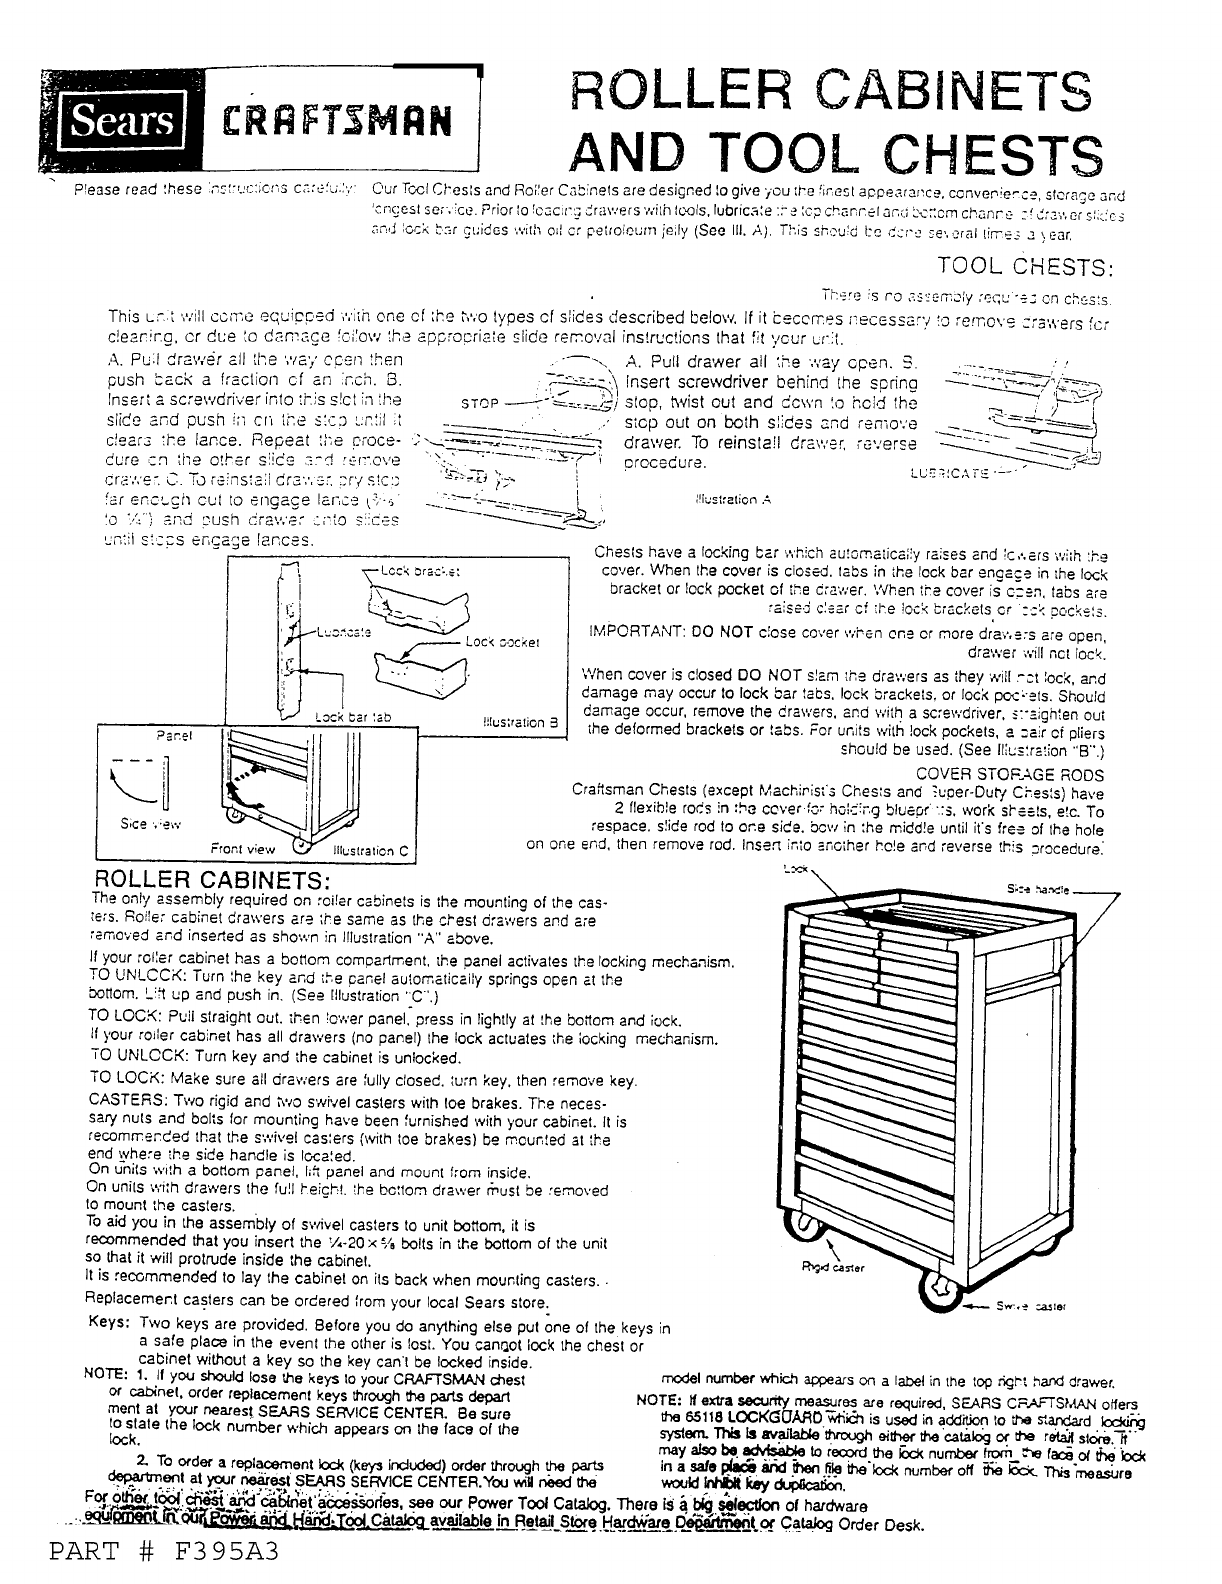 Assembly View For Cabinet Manual Guide